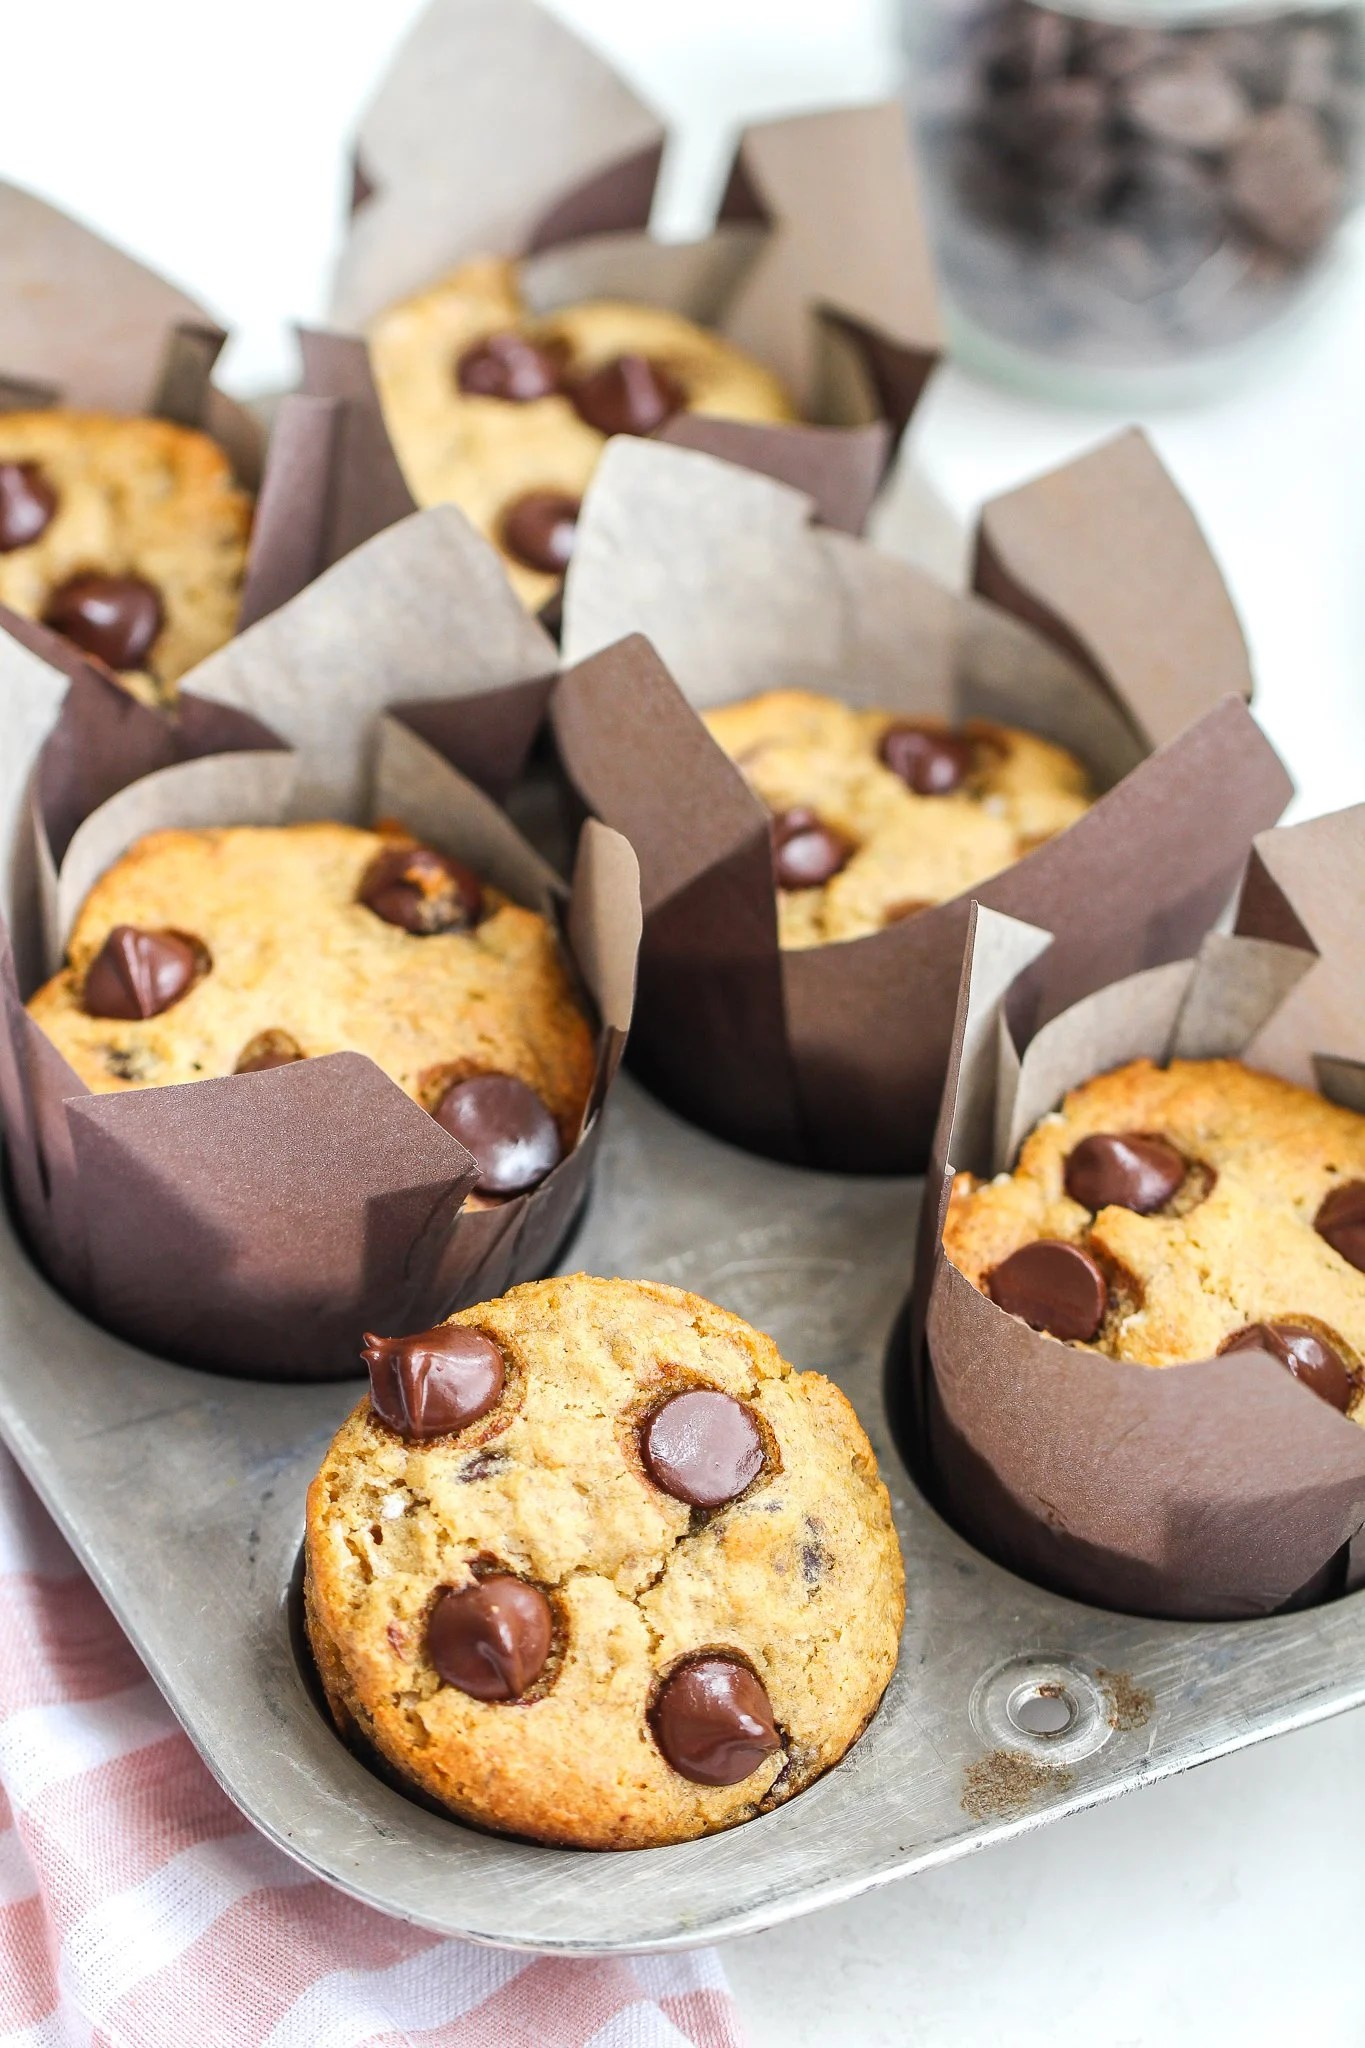 Chocolate chip banana muffins in a tin with brown liners and chocolate chips in the background